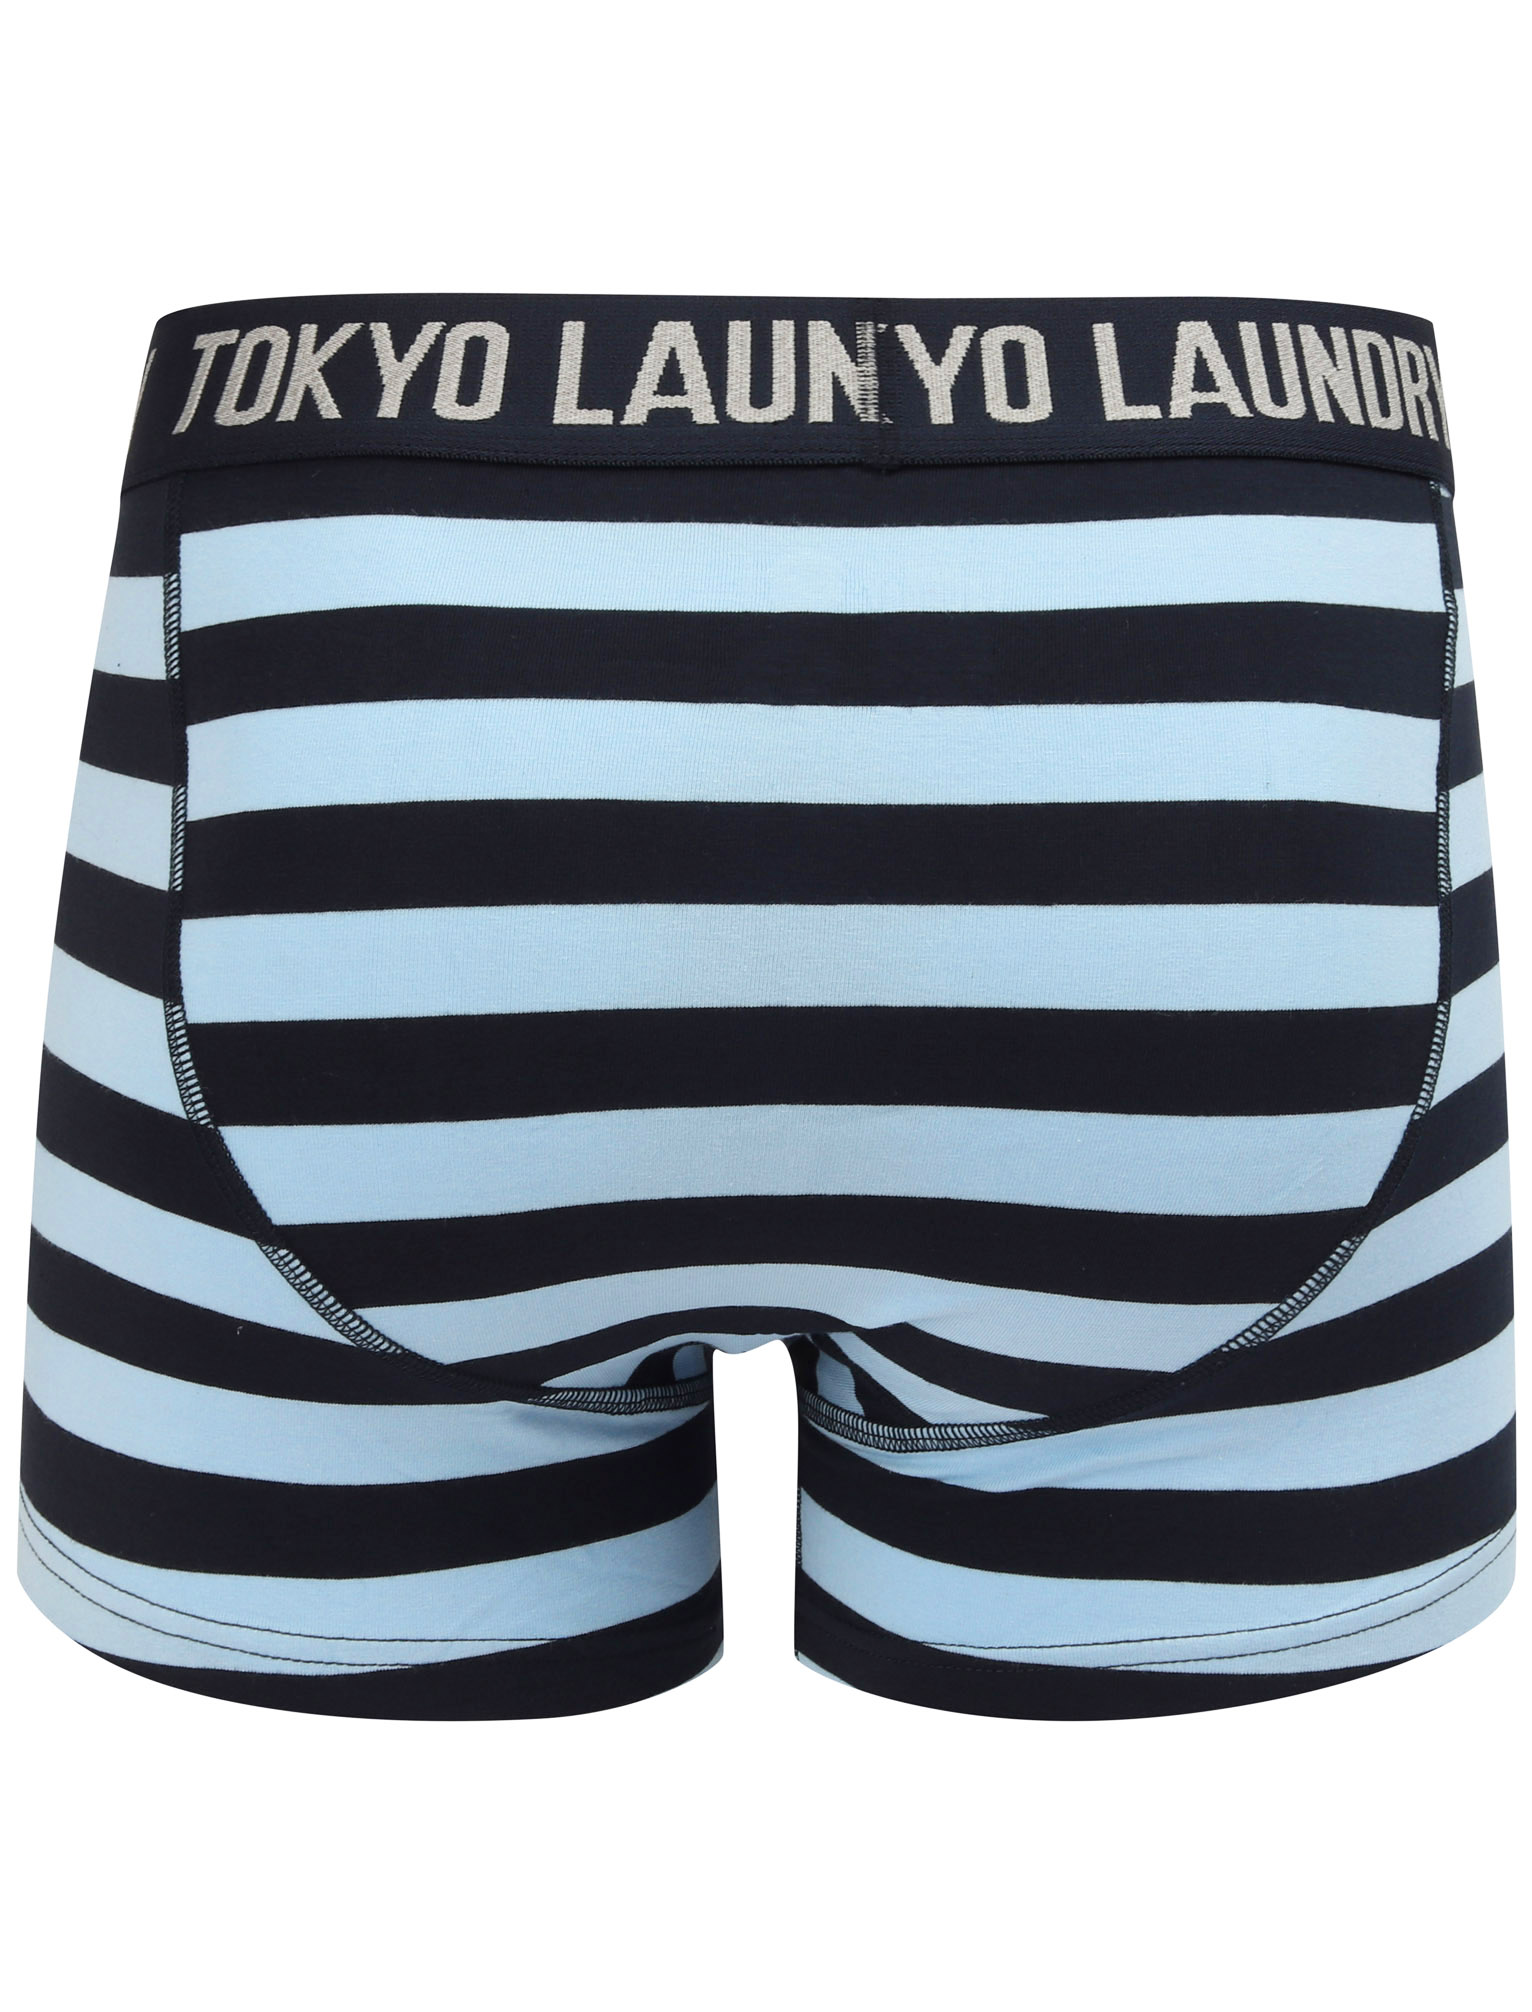 New-Mens-Tokyo-Laundry-Newburgh-2Pack-Cotton-Striped-Boxer-Shorts-Set-Size-S-XXL thumbnail 21